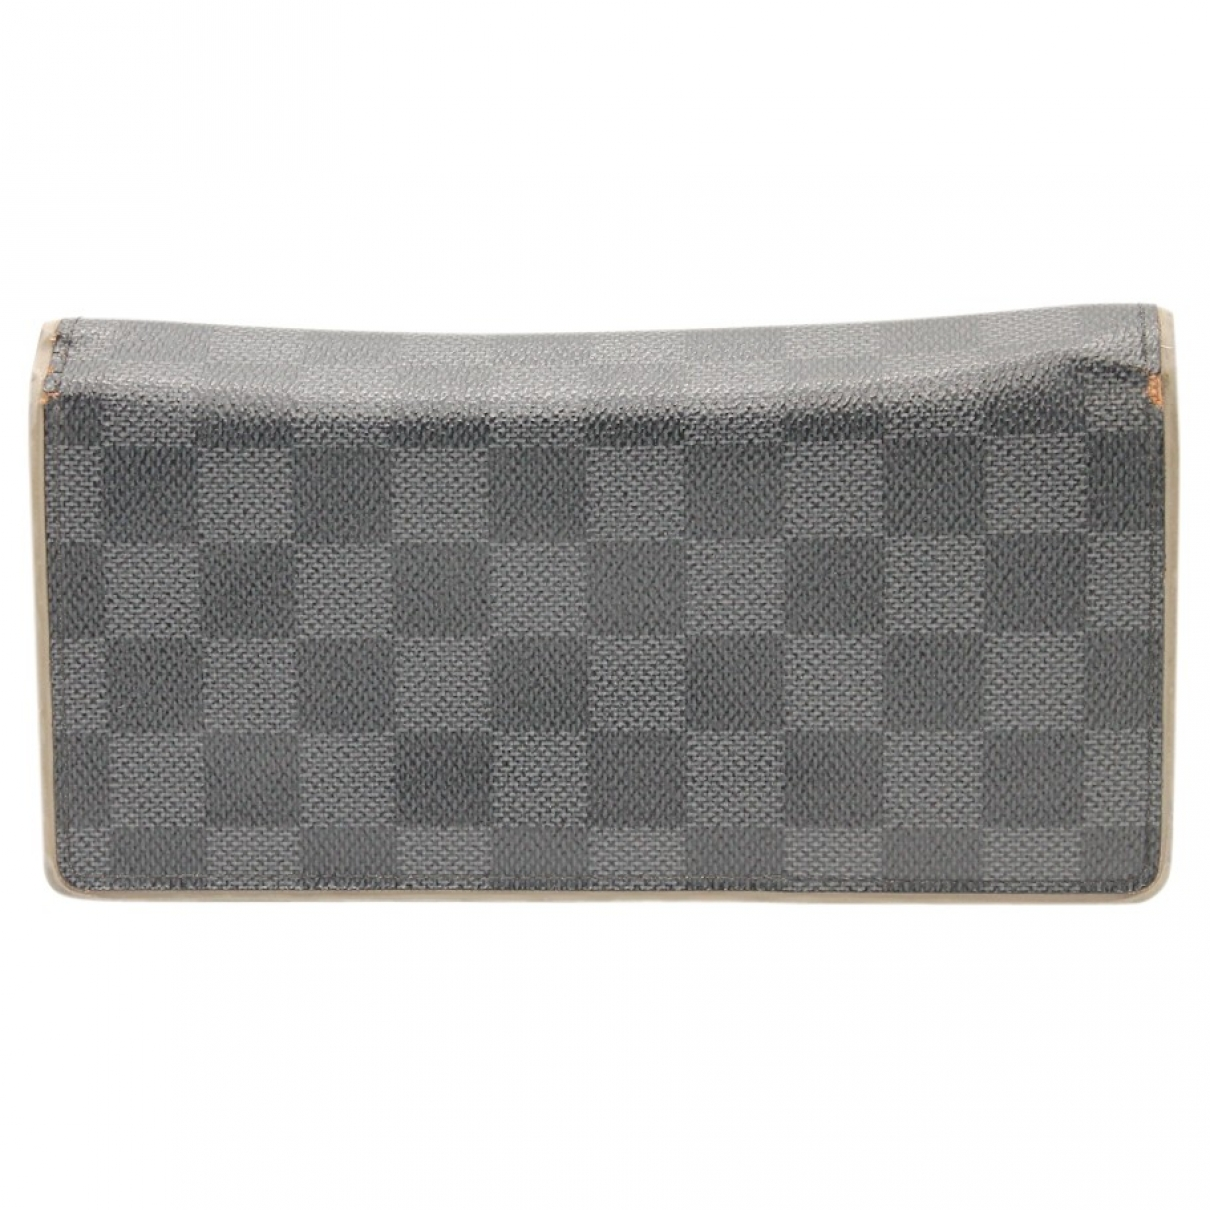 Louis Vuitton Brazza Anthracite Cloth Small bag, wallet & cases for Men \N